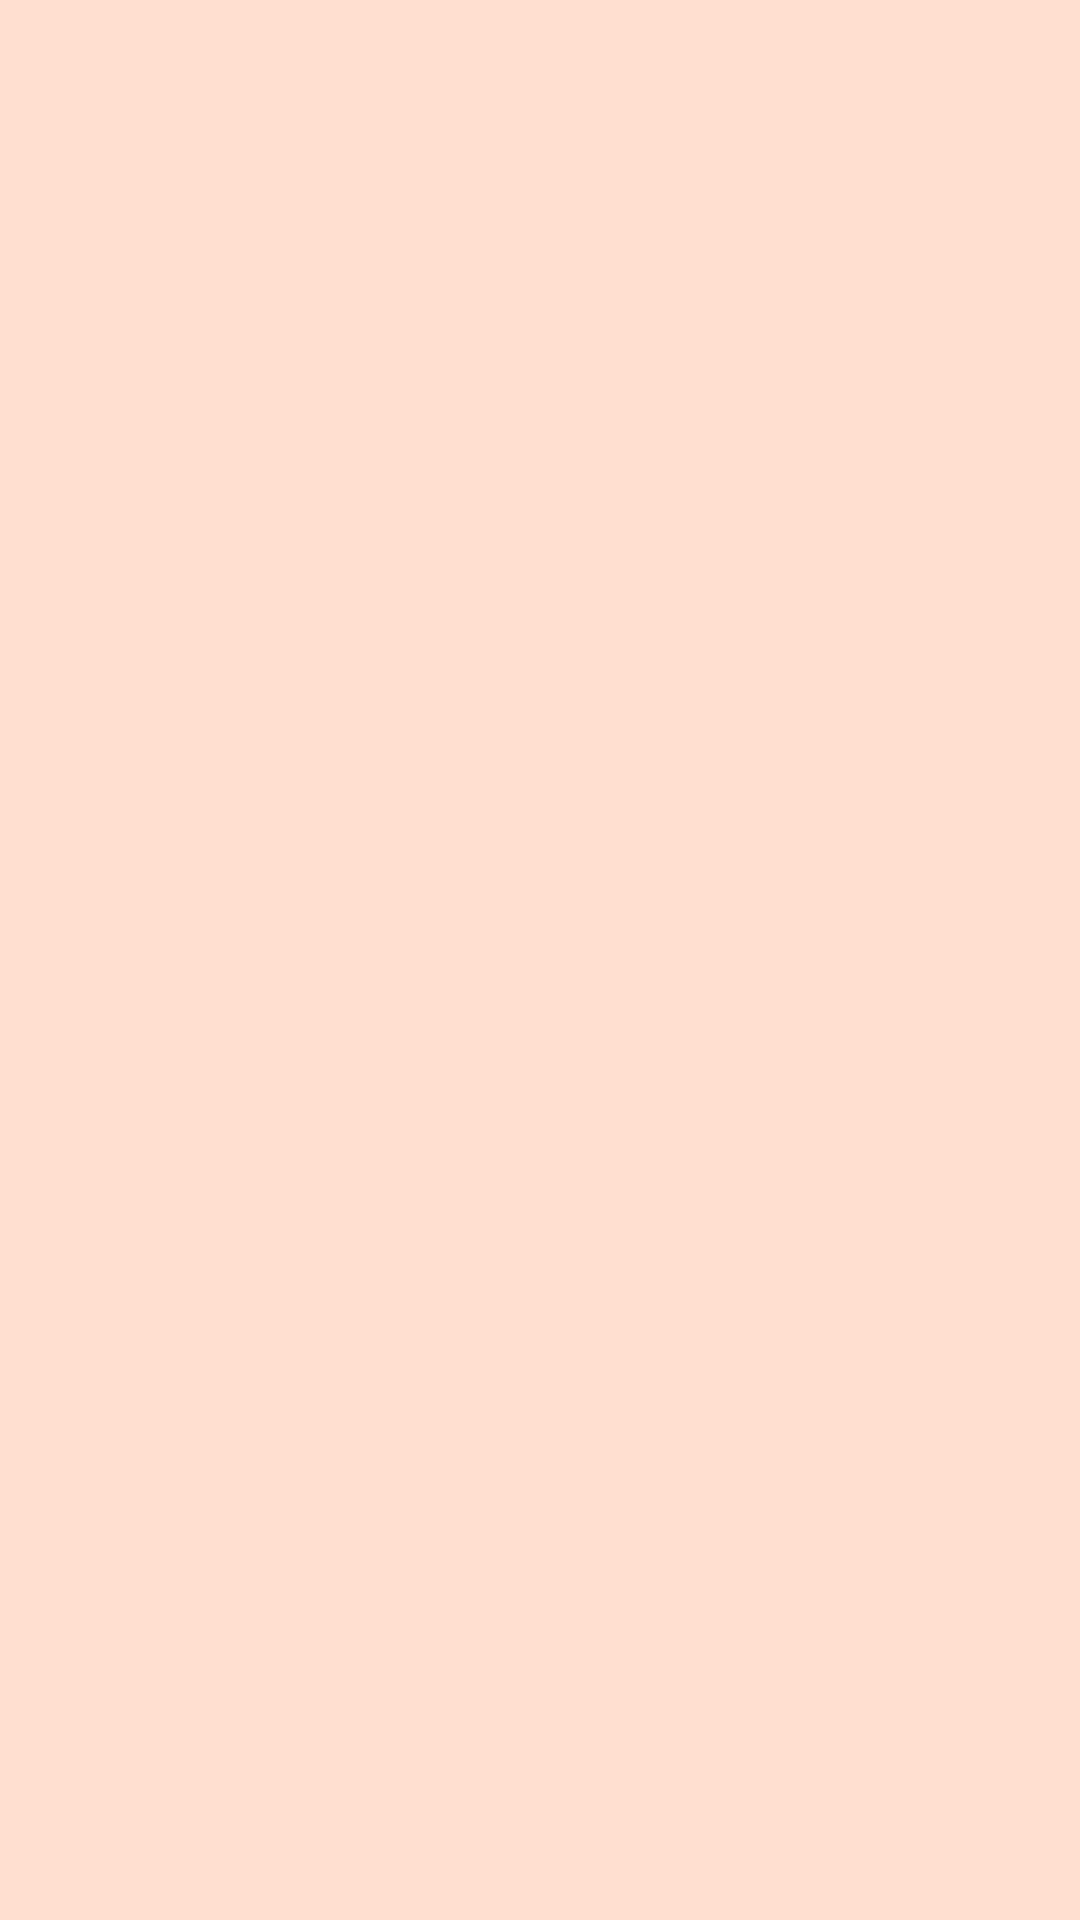 Solid Pastel Color Wallpapers Top Free Solid Pastel Color Backgrounds Wallpaperaccess